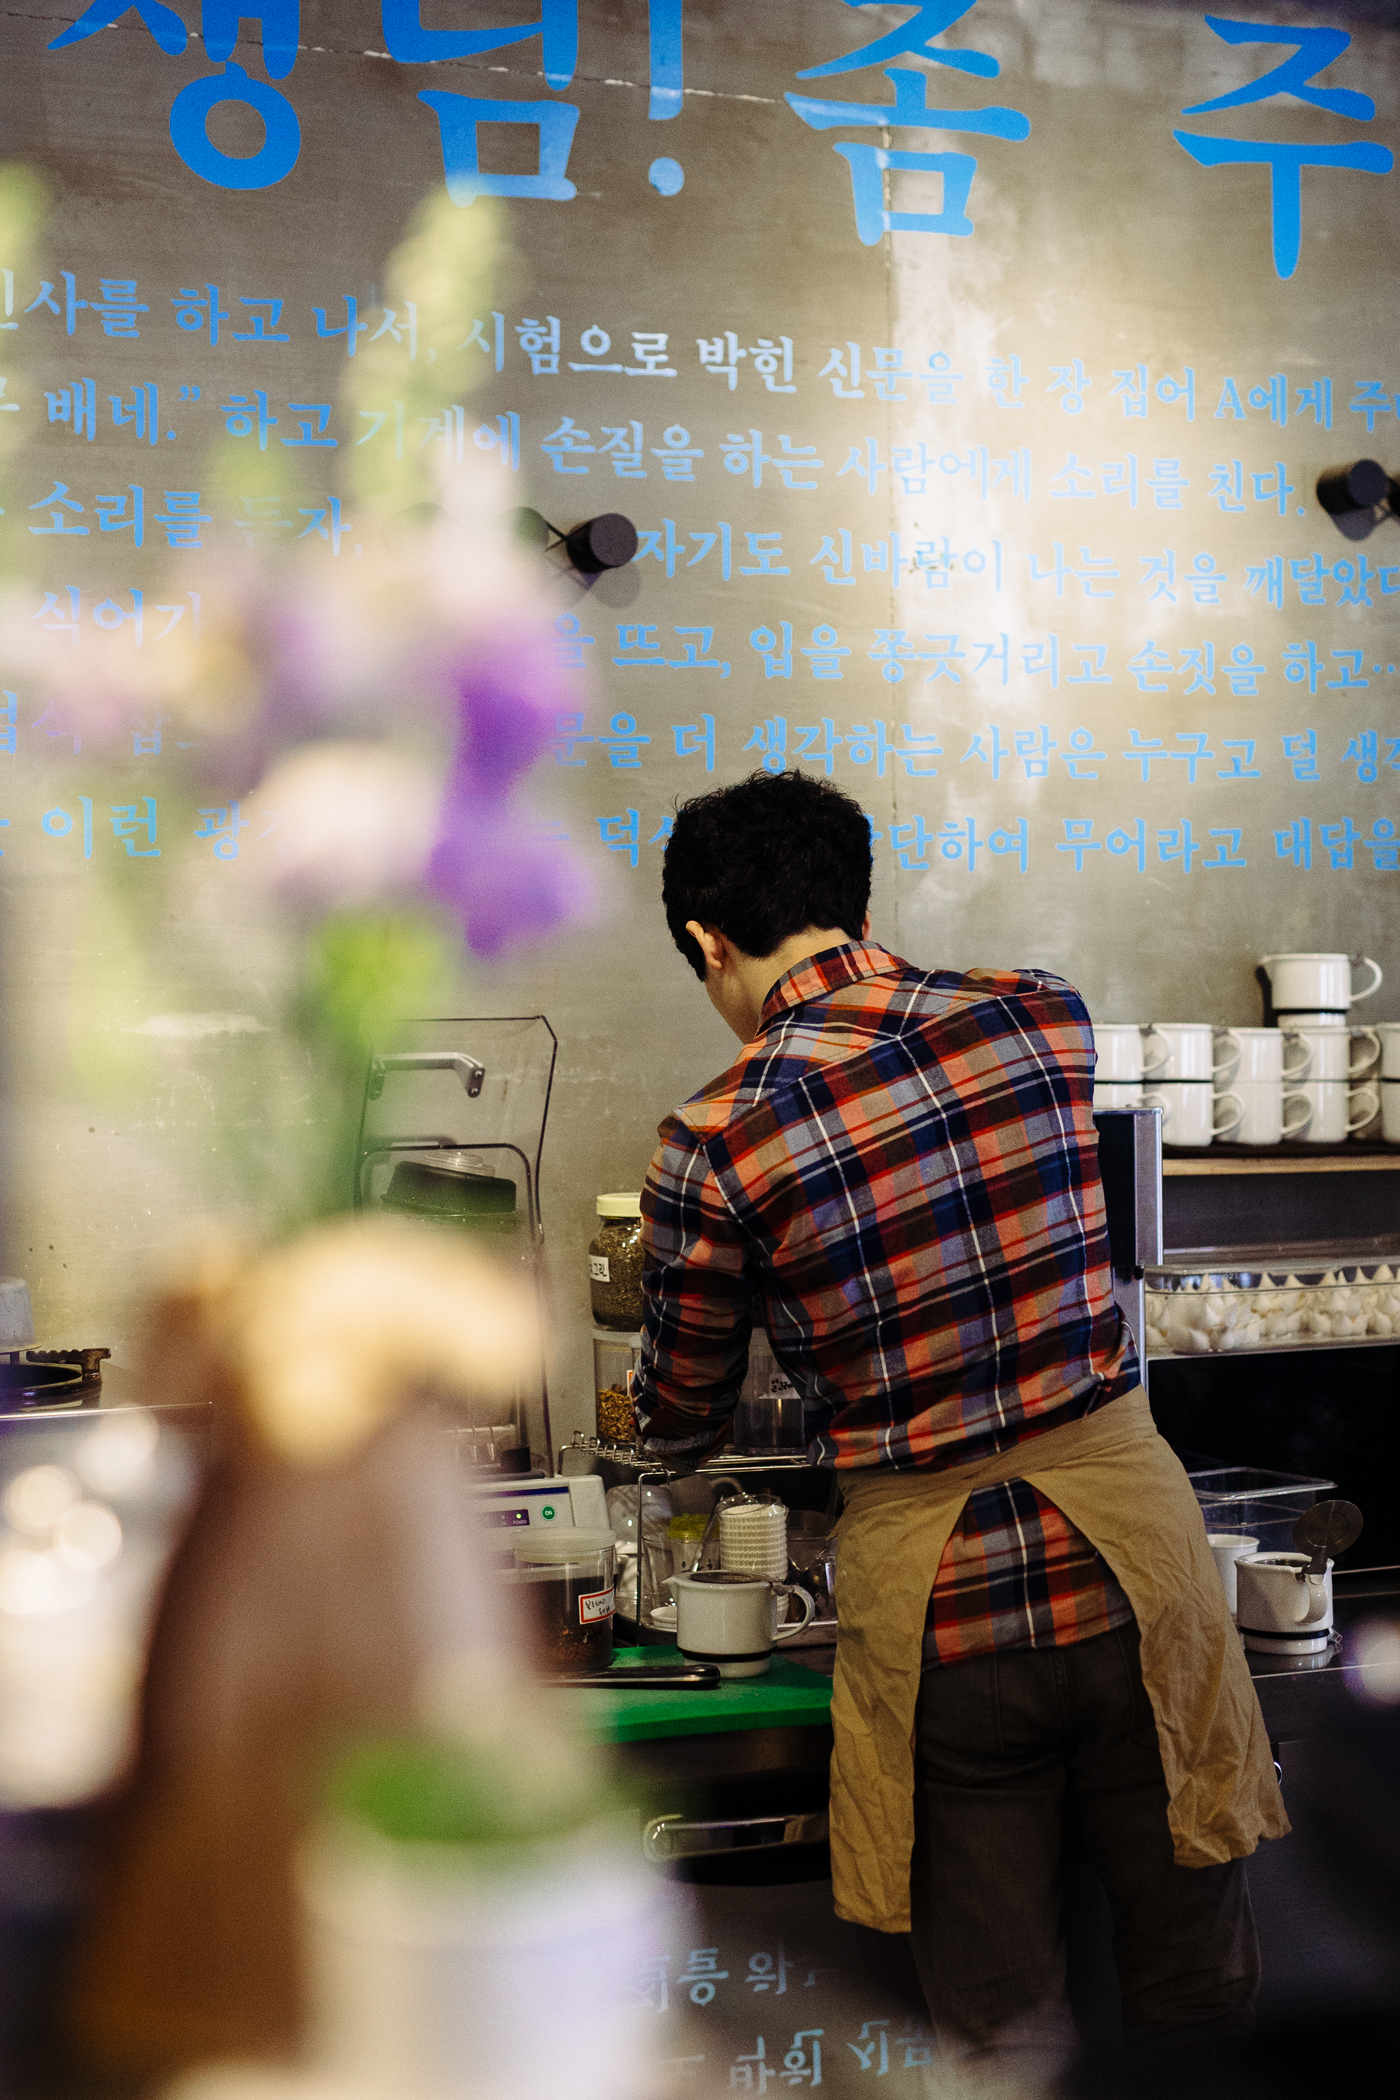 Seoul Cafe Series: Take Out Drawing Cafe (테이크아웃드로잉 카페), Seoul, South Korea.